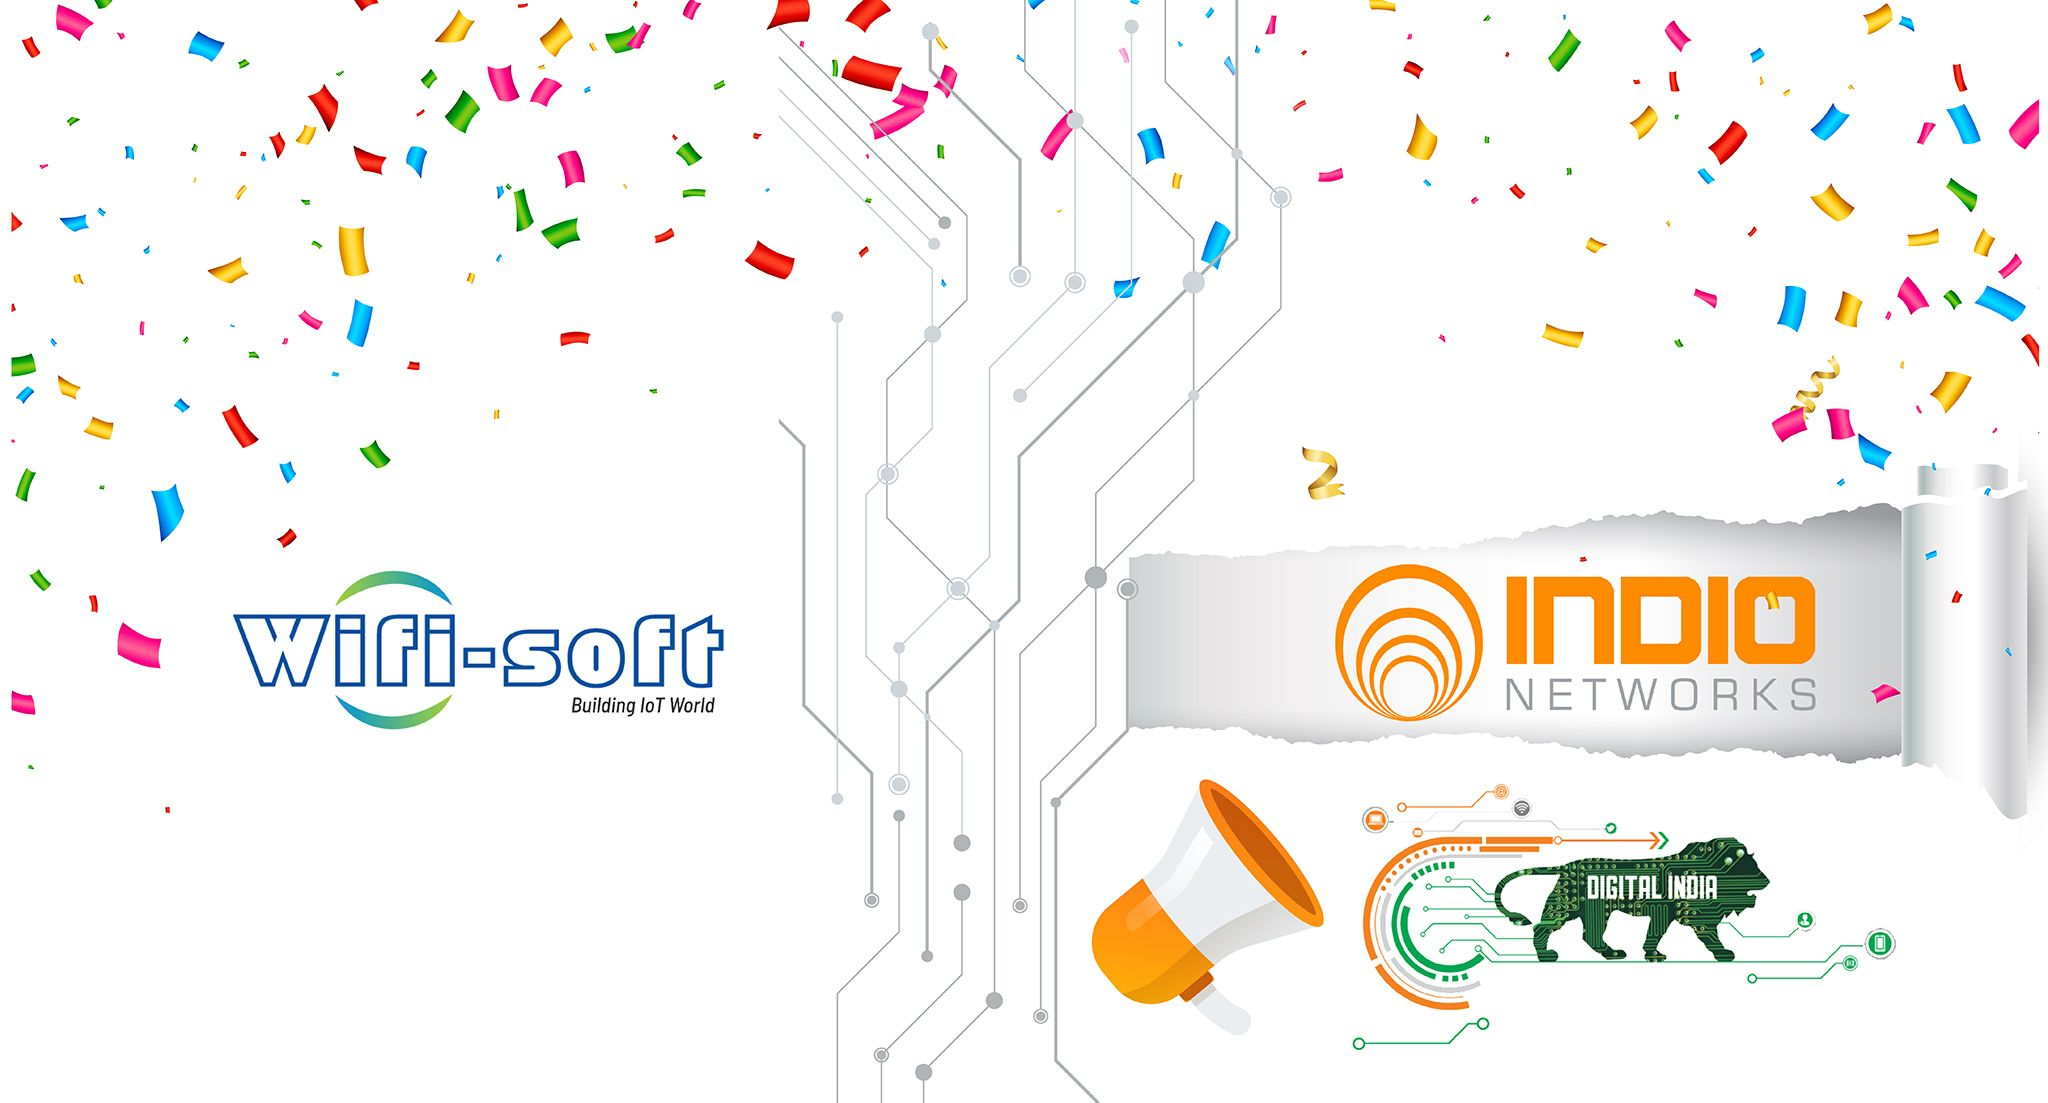 Wifisoft Solutions is now Indio Networks